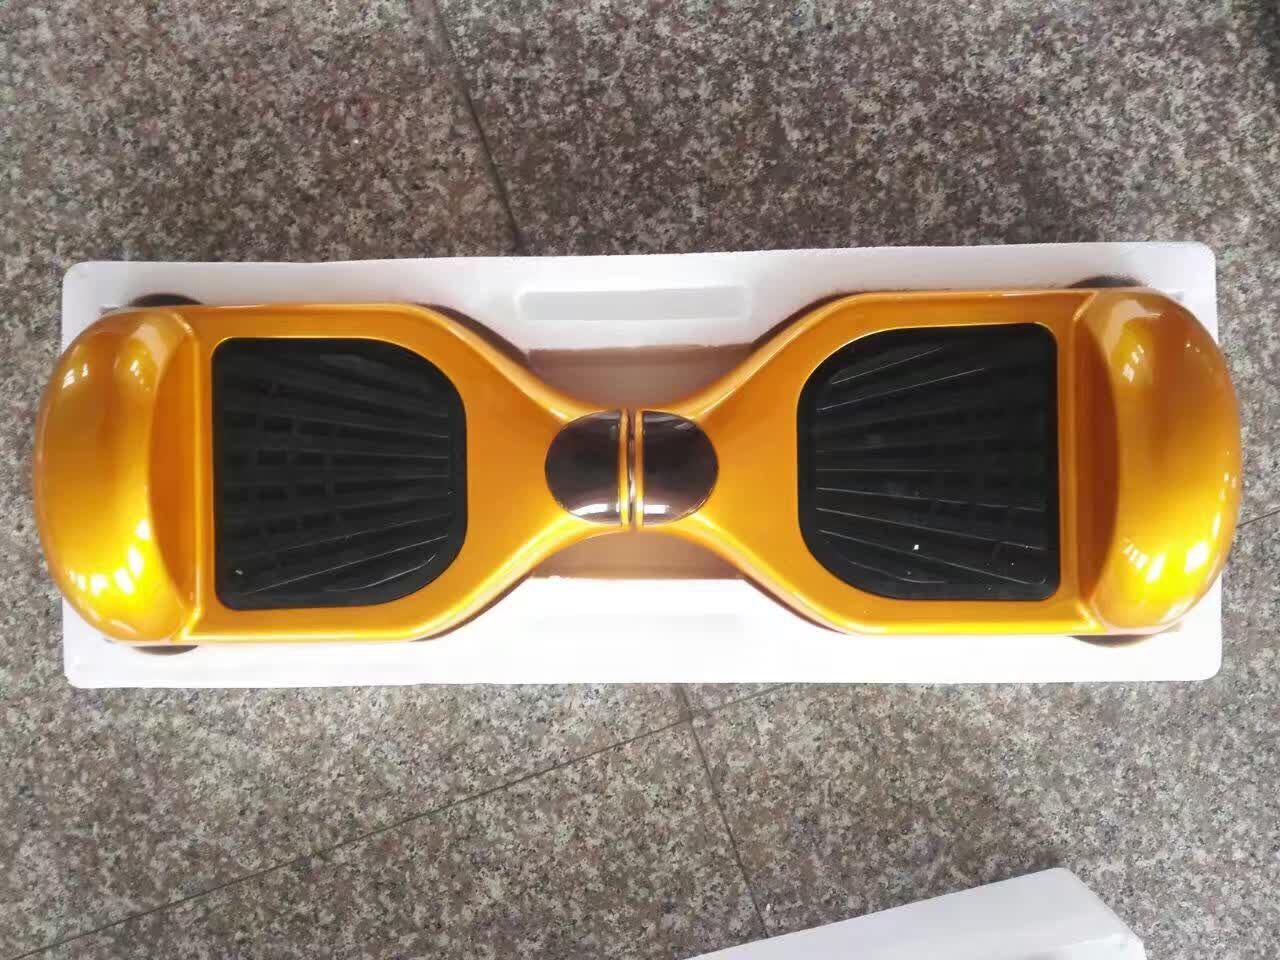 6.5inch Self Balance Scooter/Hoverboard/Scooter